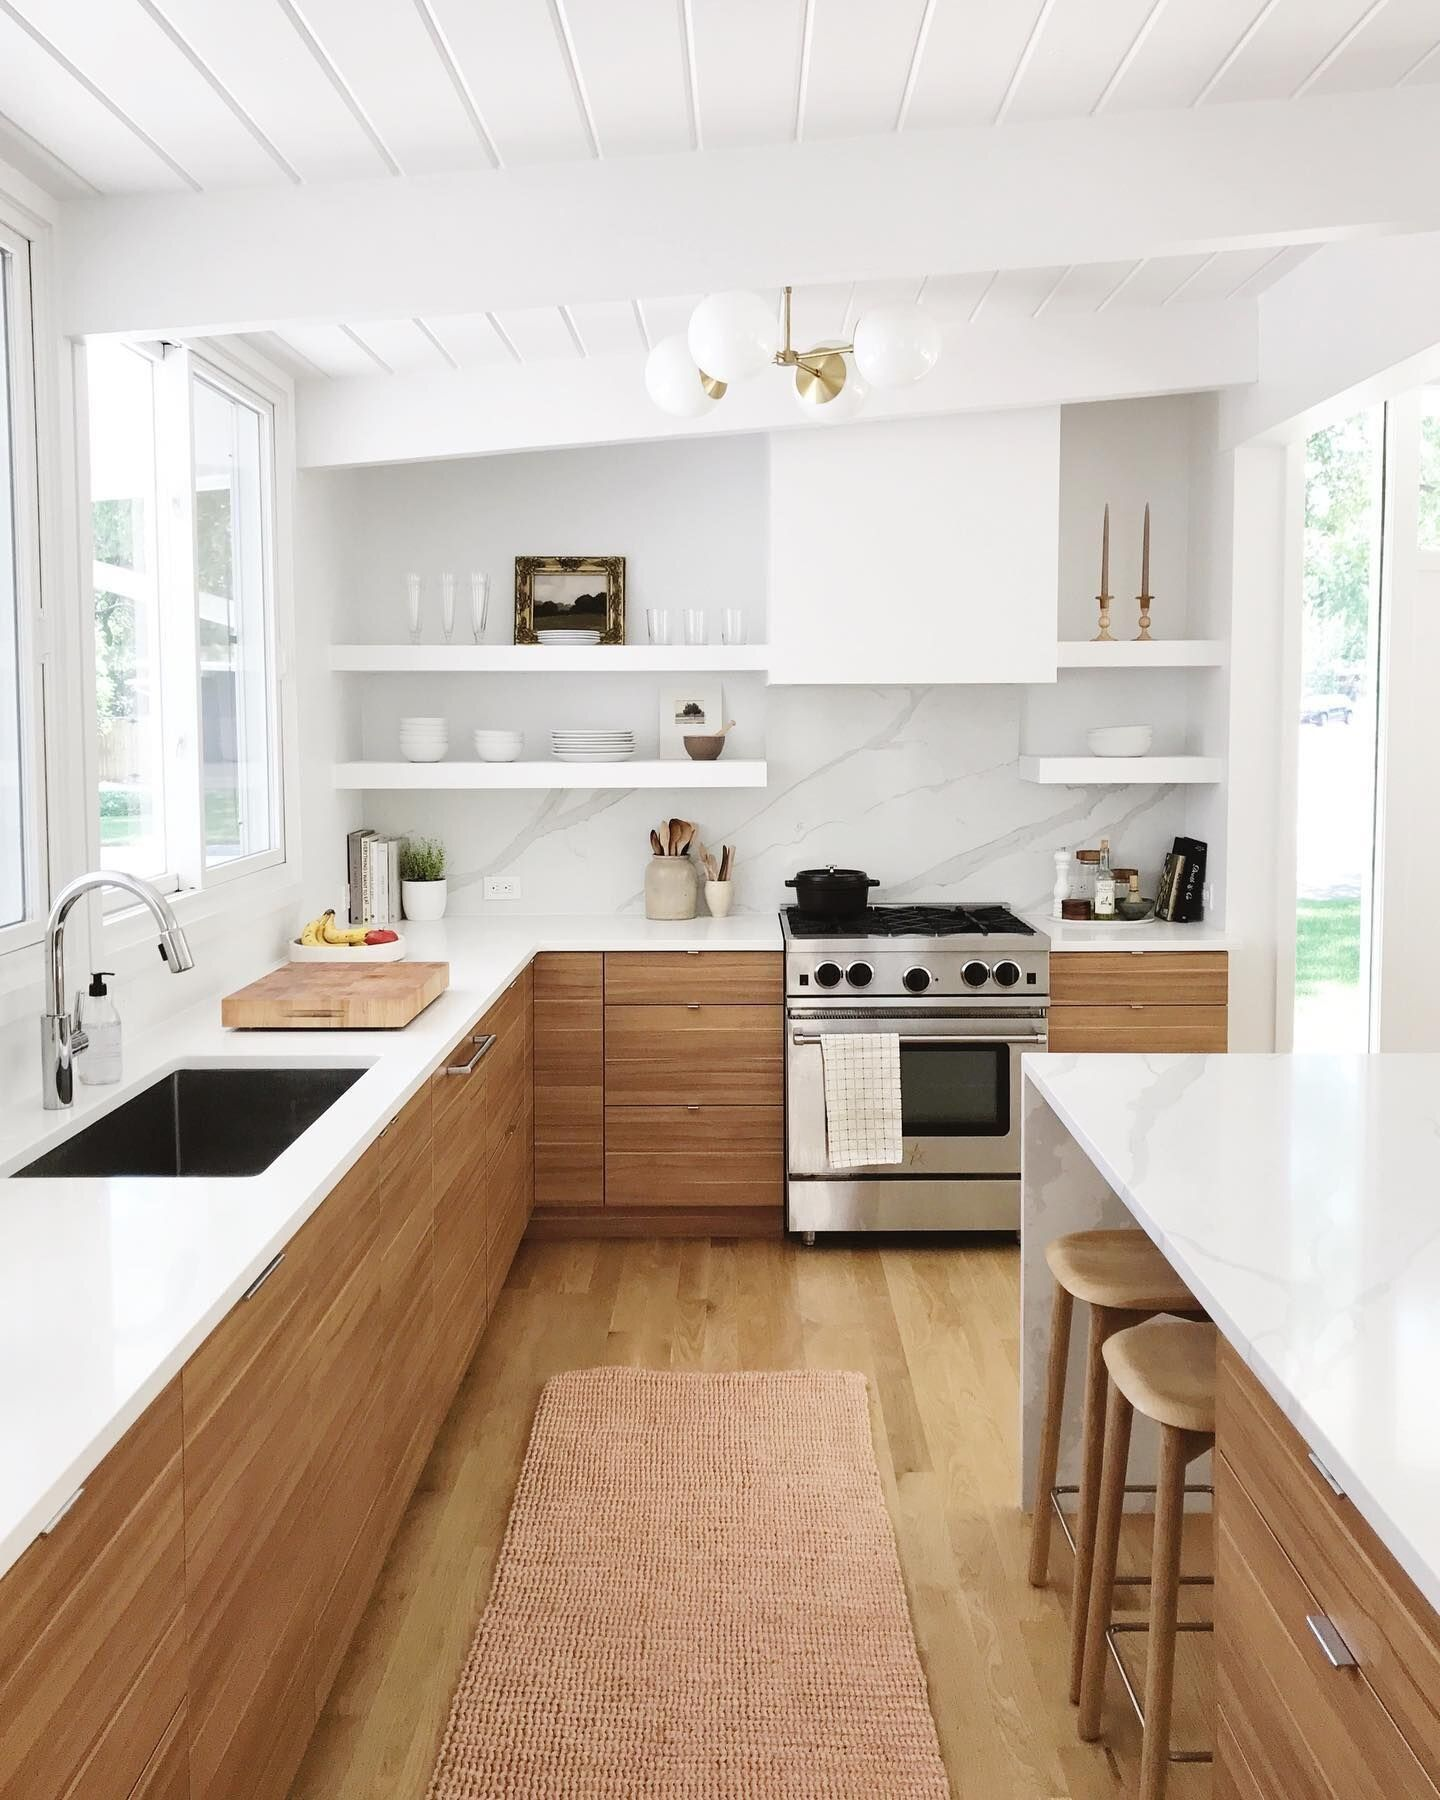 Ready to Renovate your Kitchen? Here's some fresh kitchen reno's to get your design juices flowing.